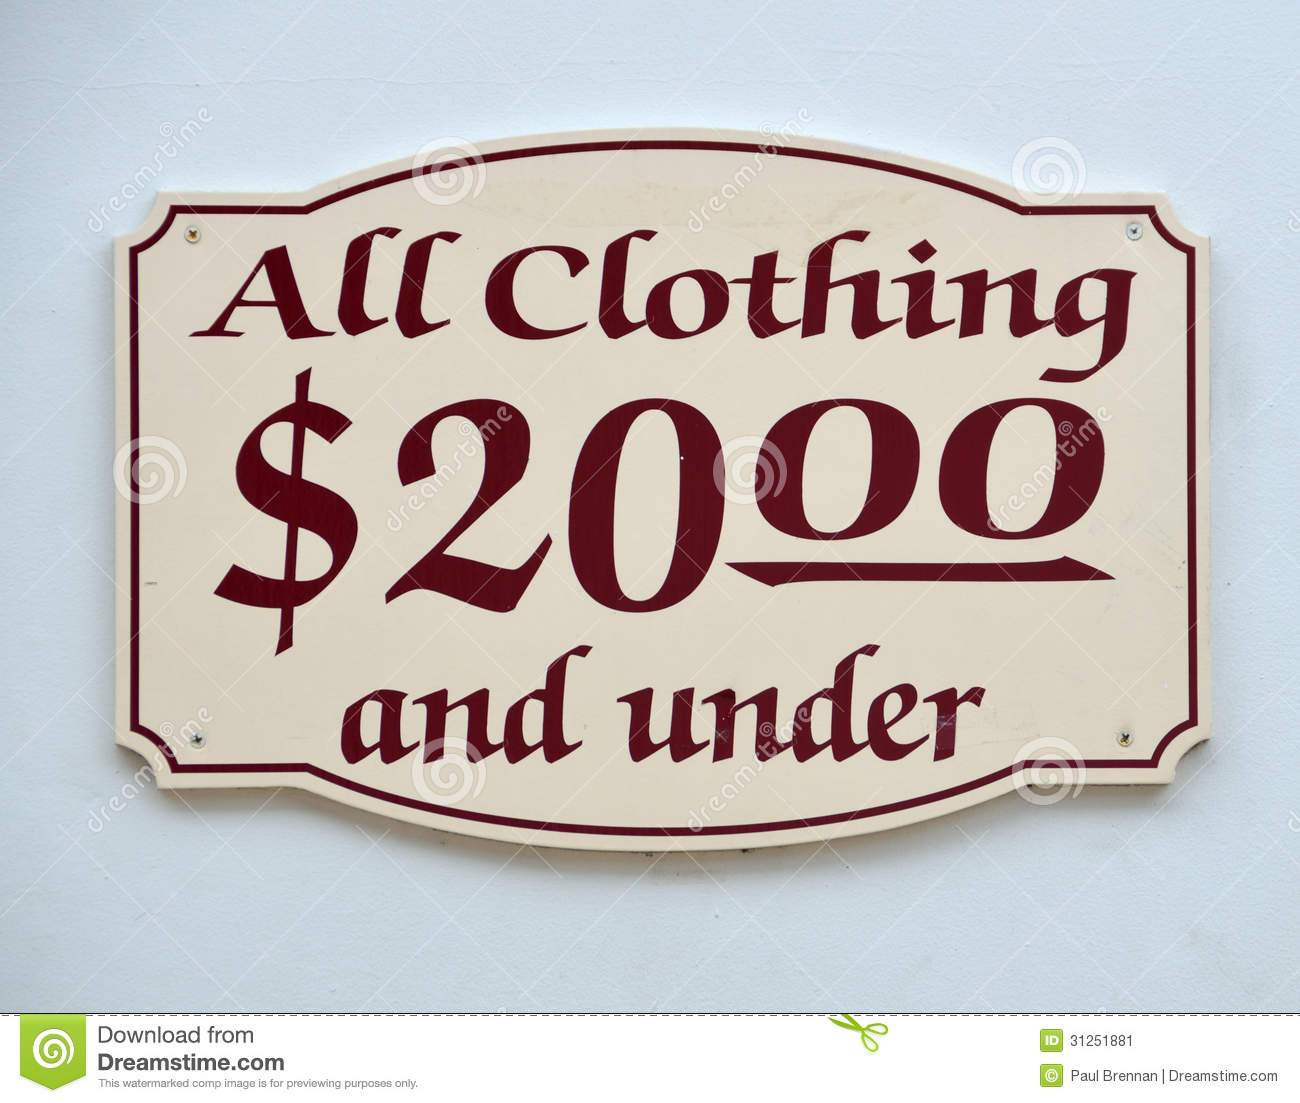 179.99 was pretty expensive! But then we saw a sign that said Trousers 30% Off and underneath it said Trousers $179.99 take an additional 50% off